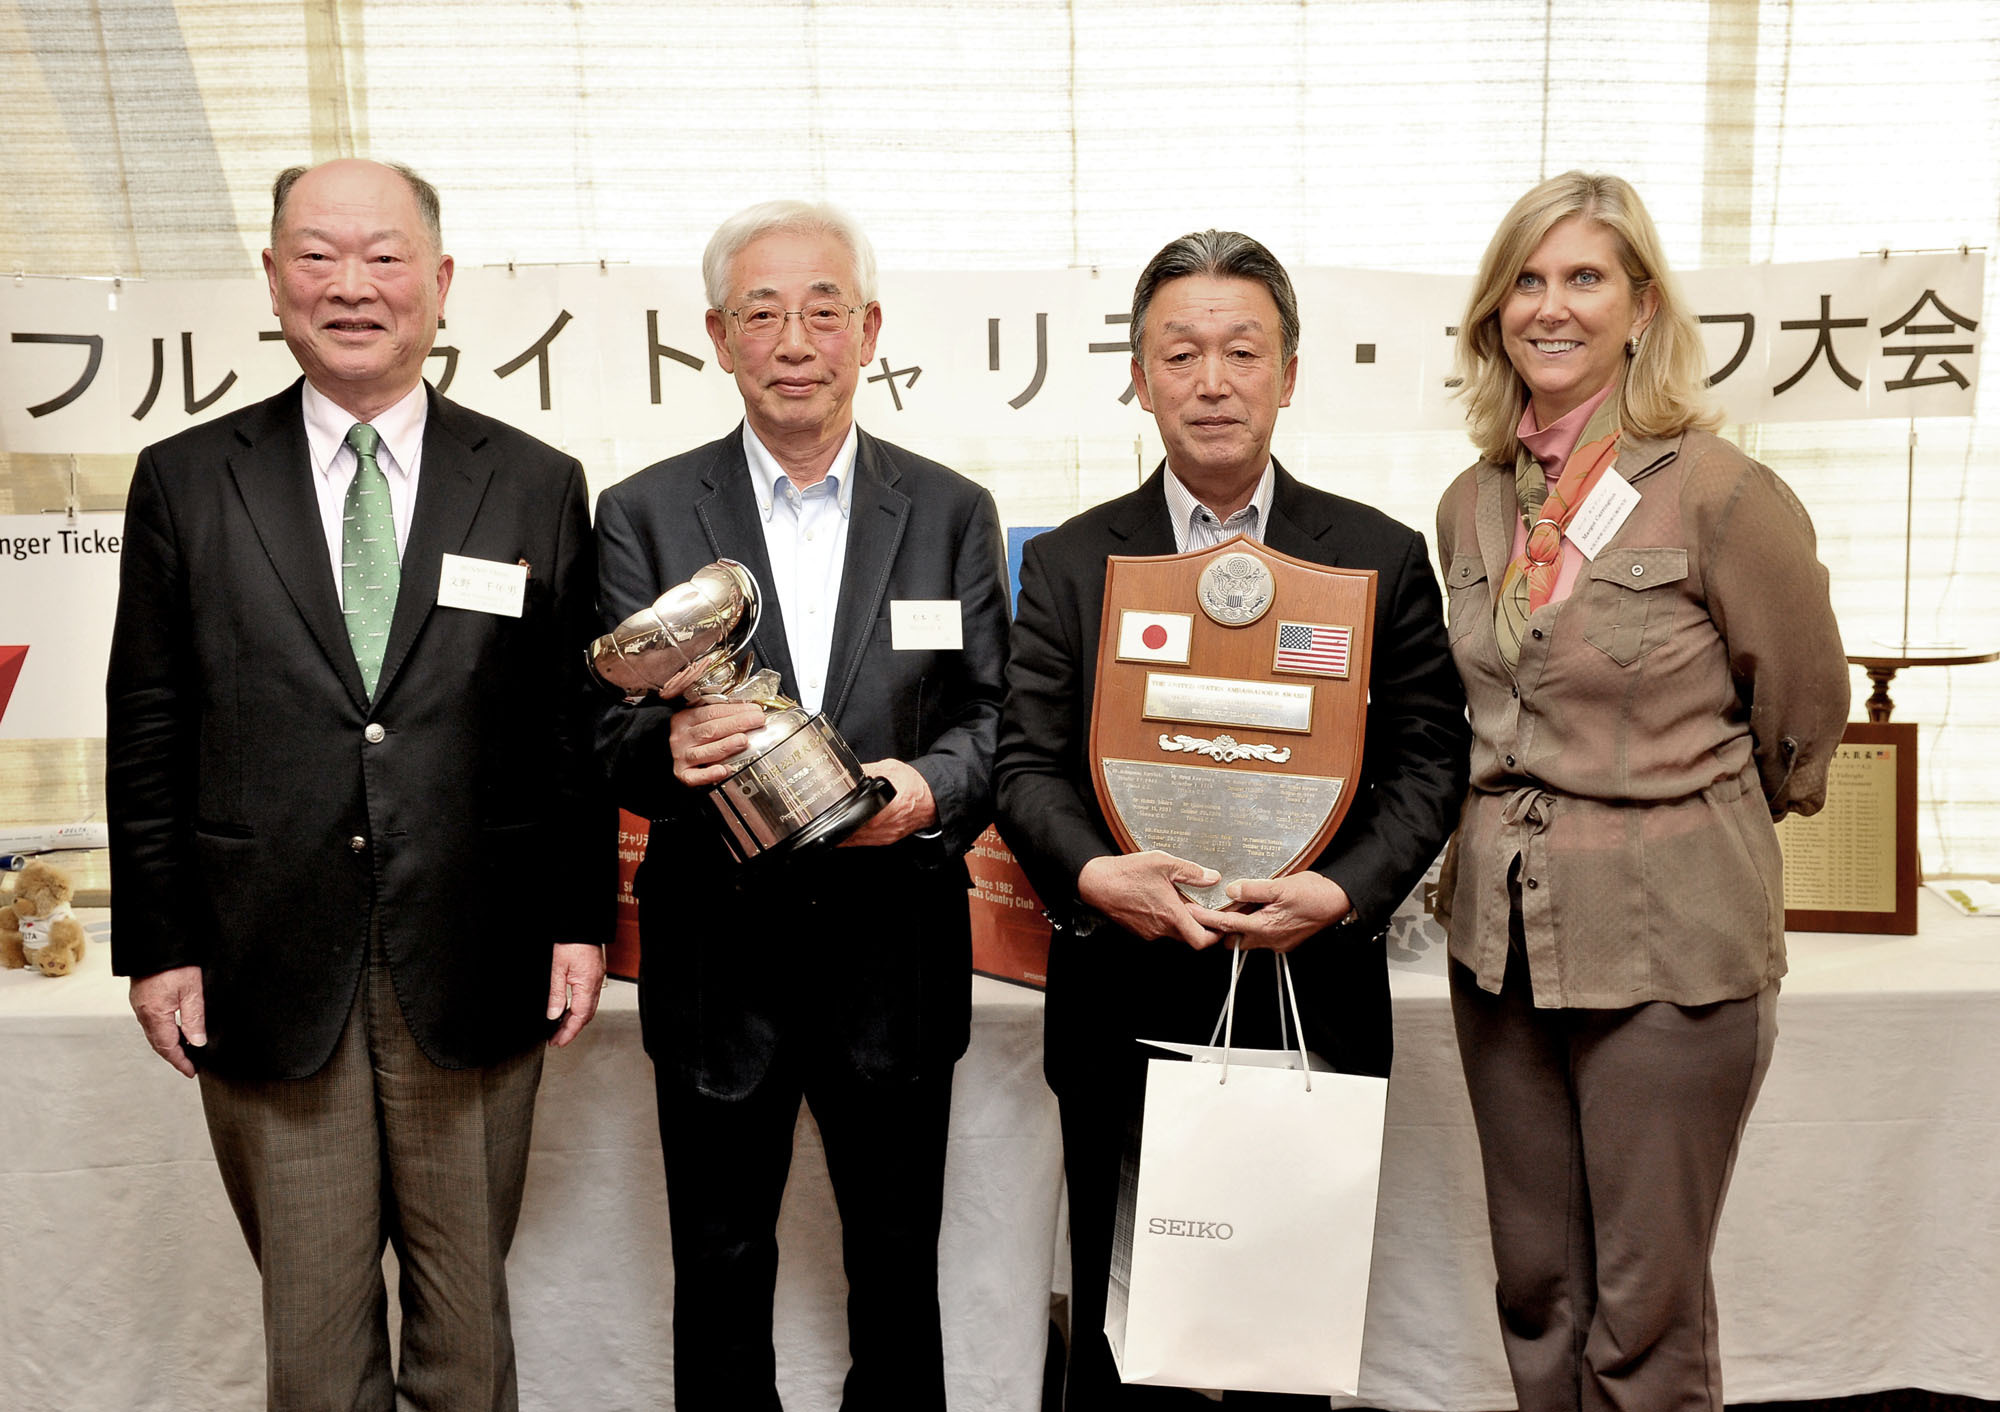 From left, Fulbright Alumni Association of Japan President Chitoo Bunno poses with Vice Chief Director of the Totsuka Country Club and Prime Minister's cup winner Ko Matsumoto; Suwa Co. President and U.S. Ambassador's Plaque winner Yasuo Ishii; and U.S. Embassy Public Affairs Minister Counselor, Margot Carrington following the 40th Japan-U.S. Fulbright Charity Golf Tournament, at the Totsuka Country Club in Kanagawa Prefecture on Oct. 24. |  YOSHIAKI MIURA